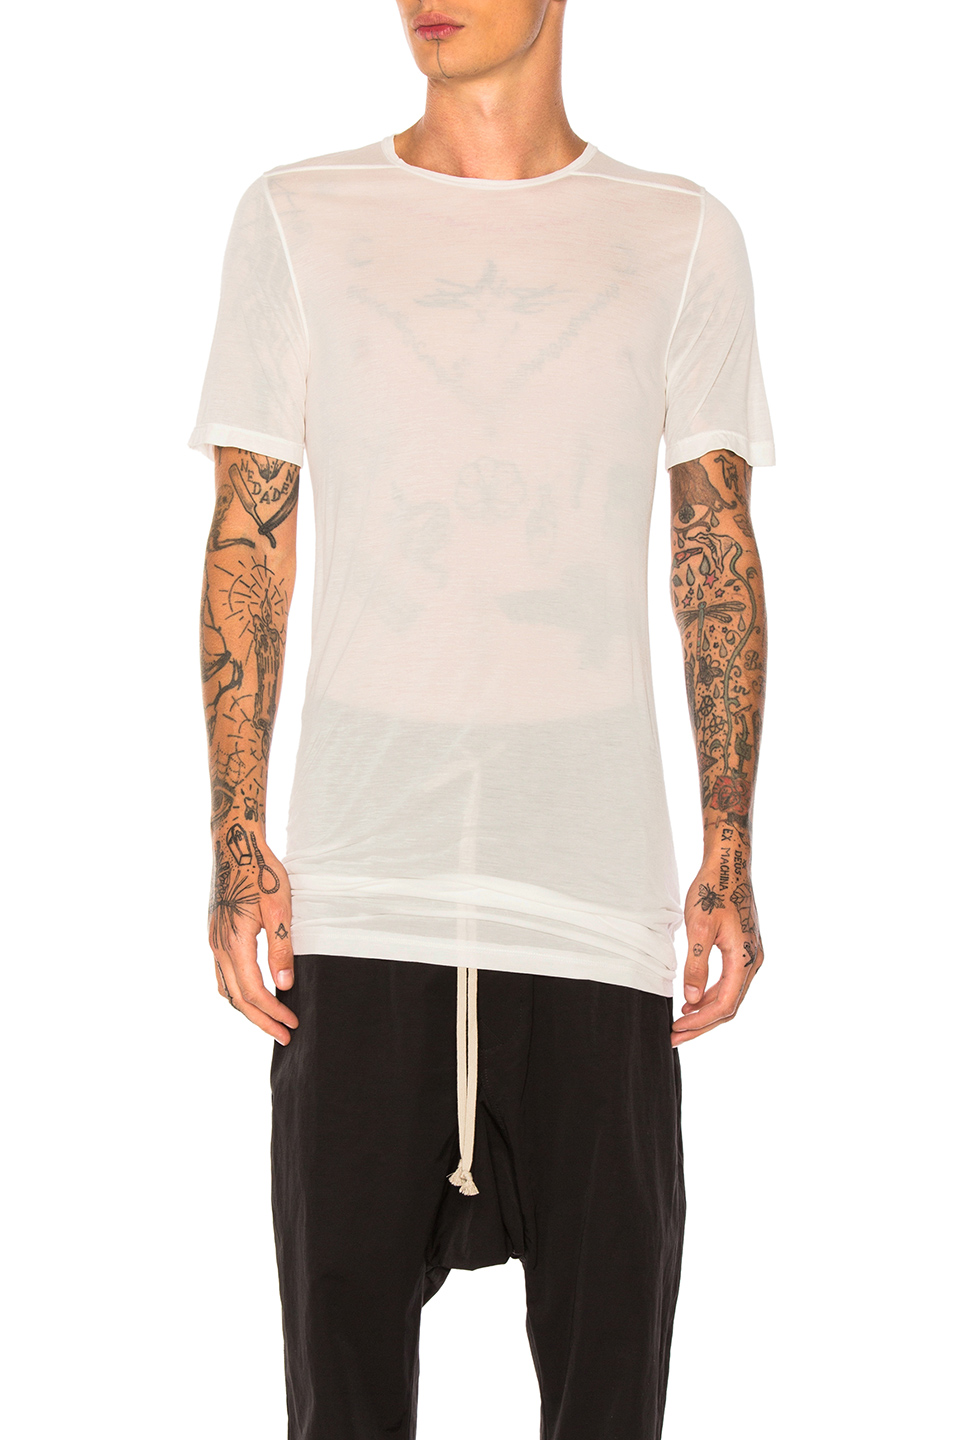 DRKSHDW by Rick Owens Level Tee in White